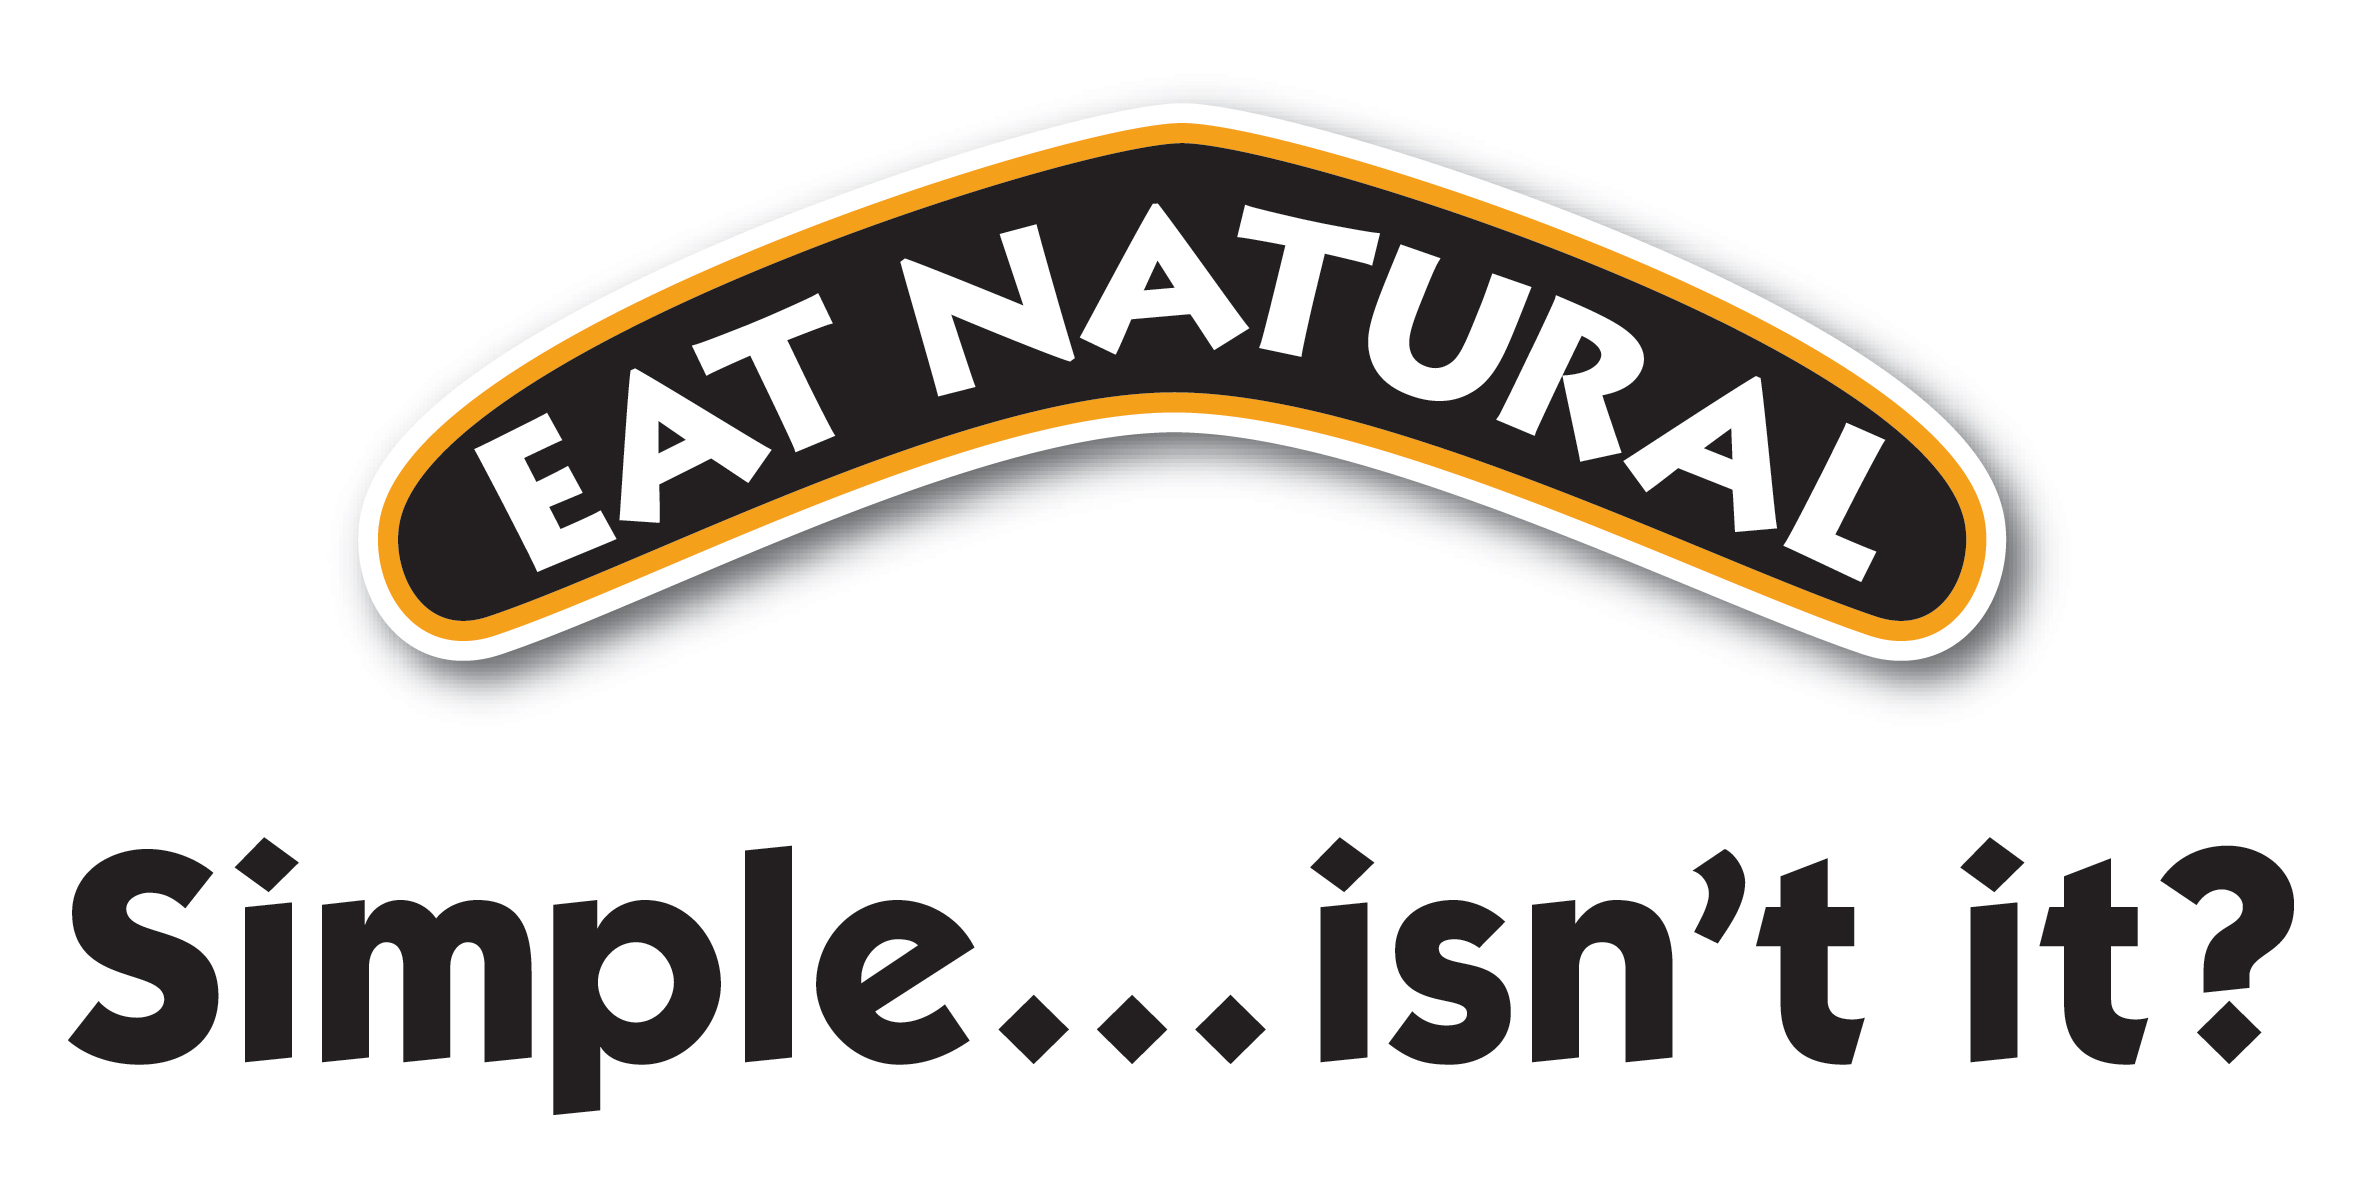 Link to http://www.eatnatural.co.uk